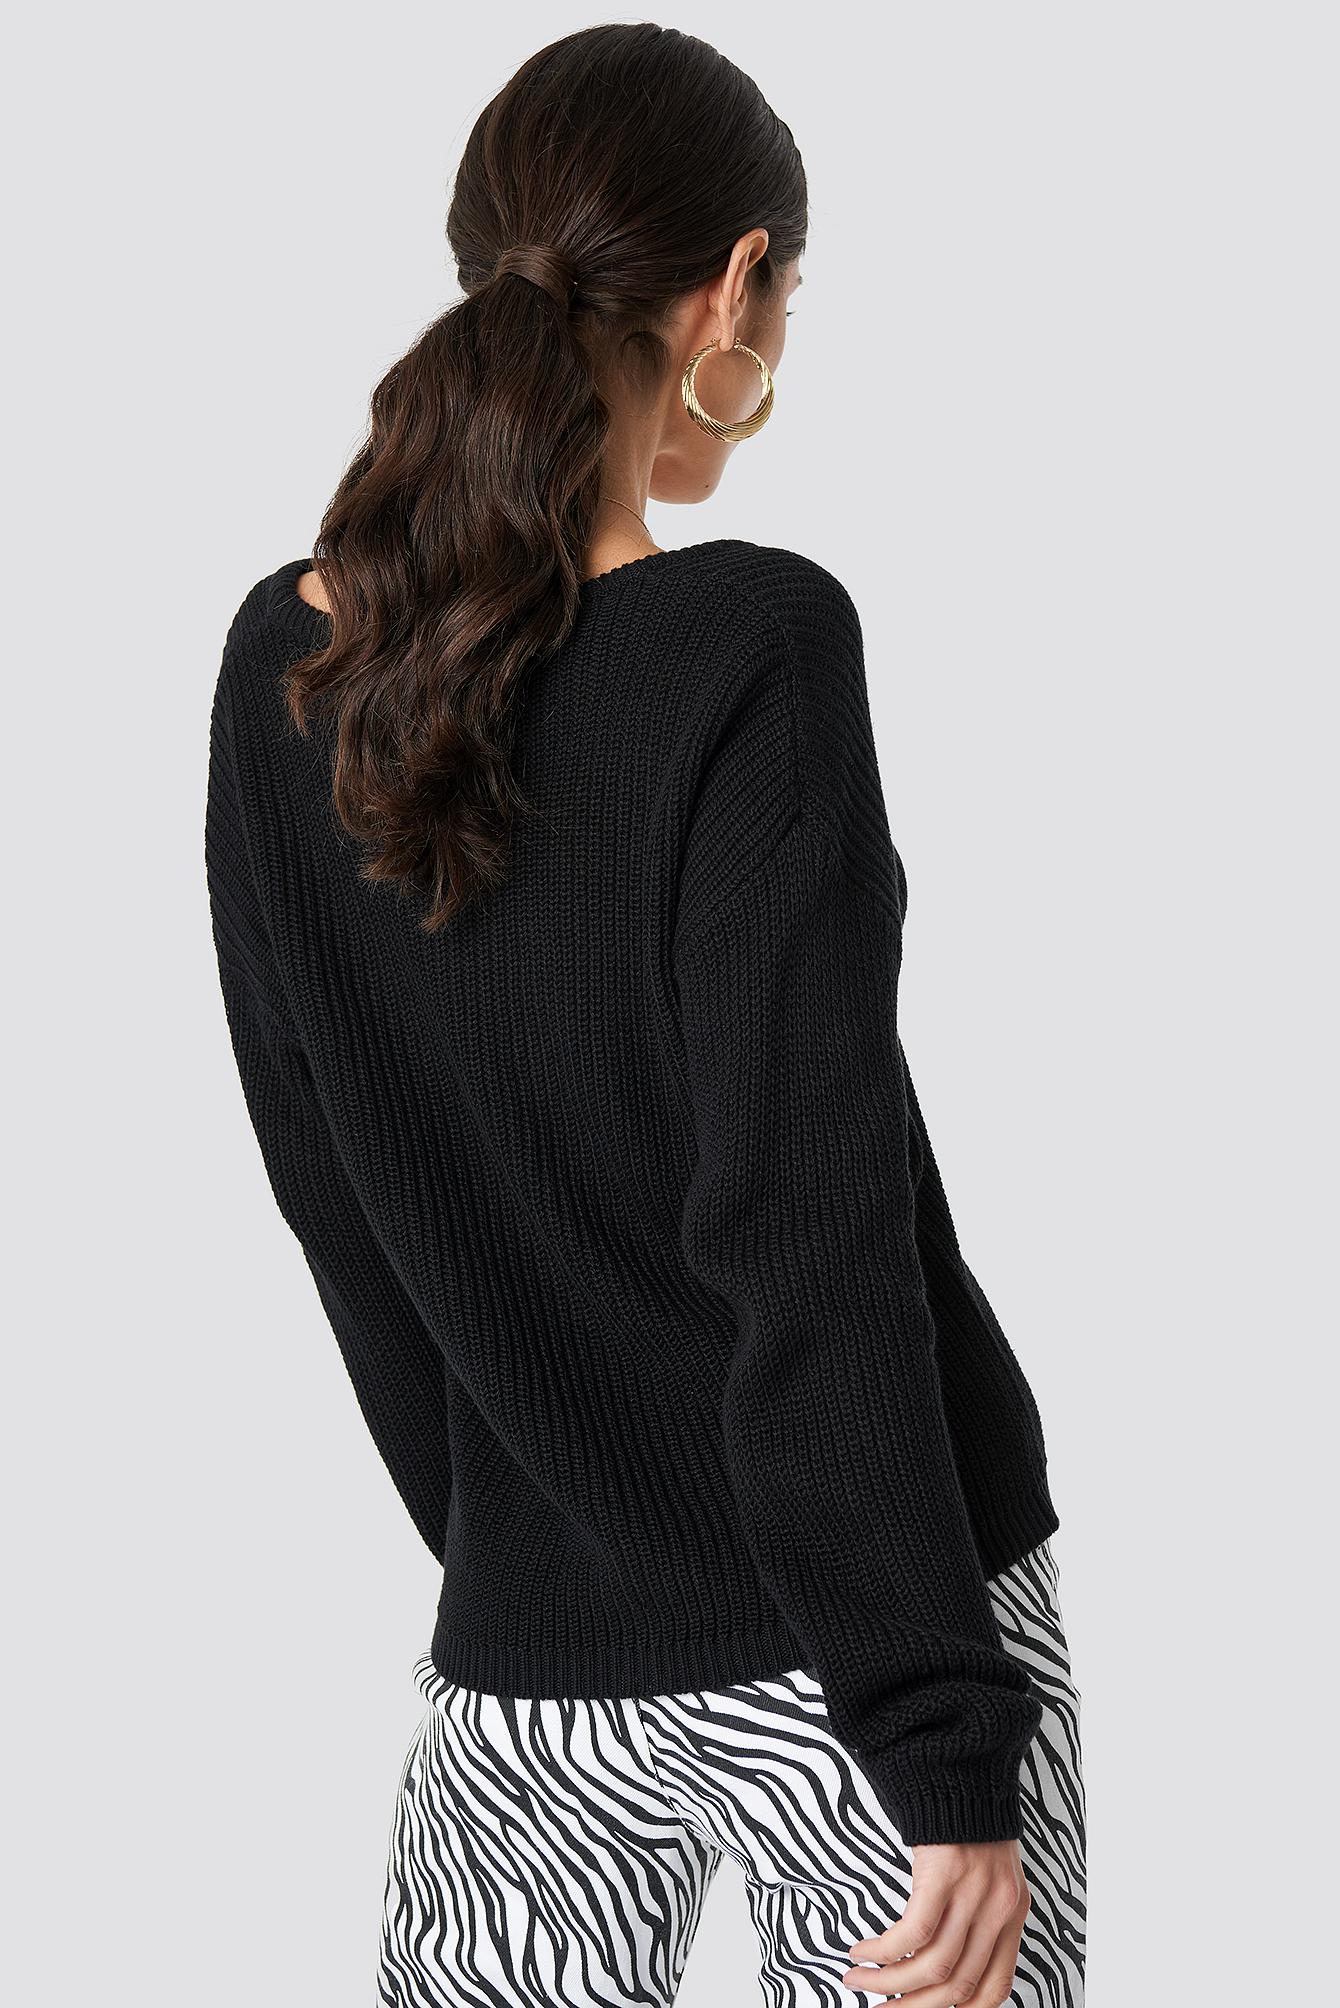 877eb35952b597 Lyst - NA-KD Deep Front V-neck Knitted Sweater Black in Black